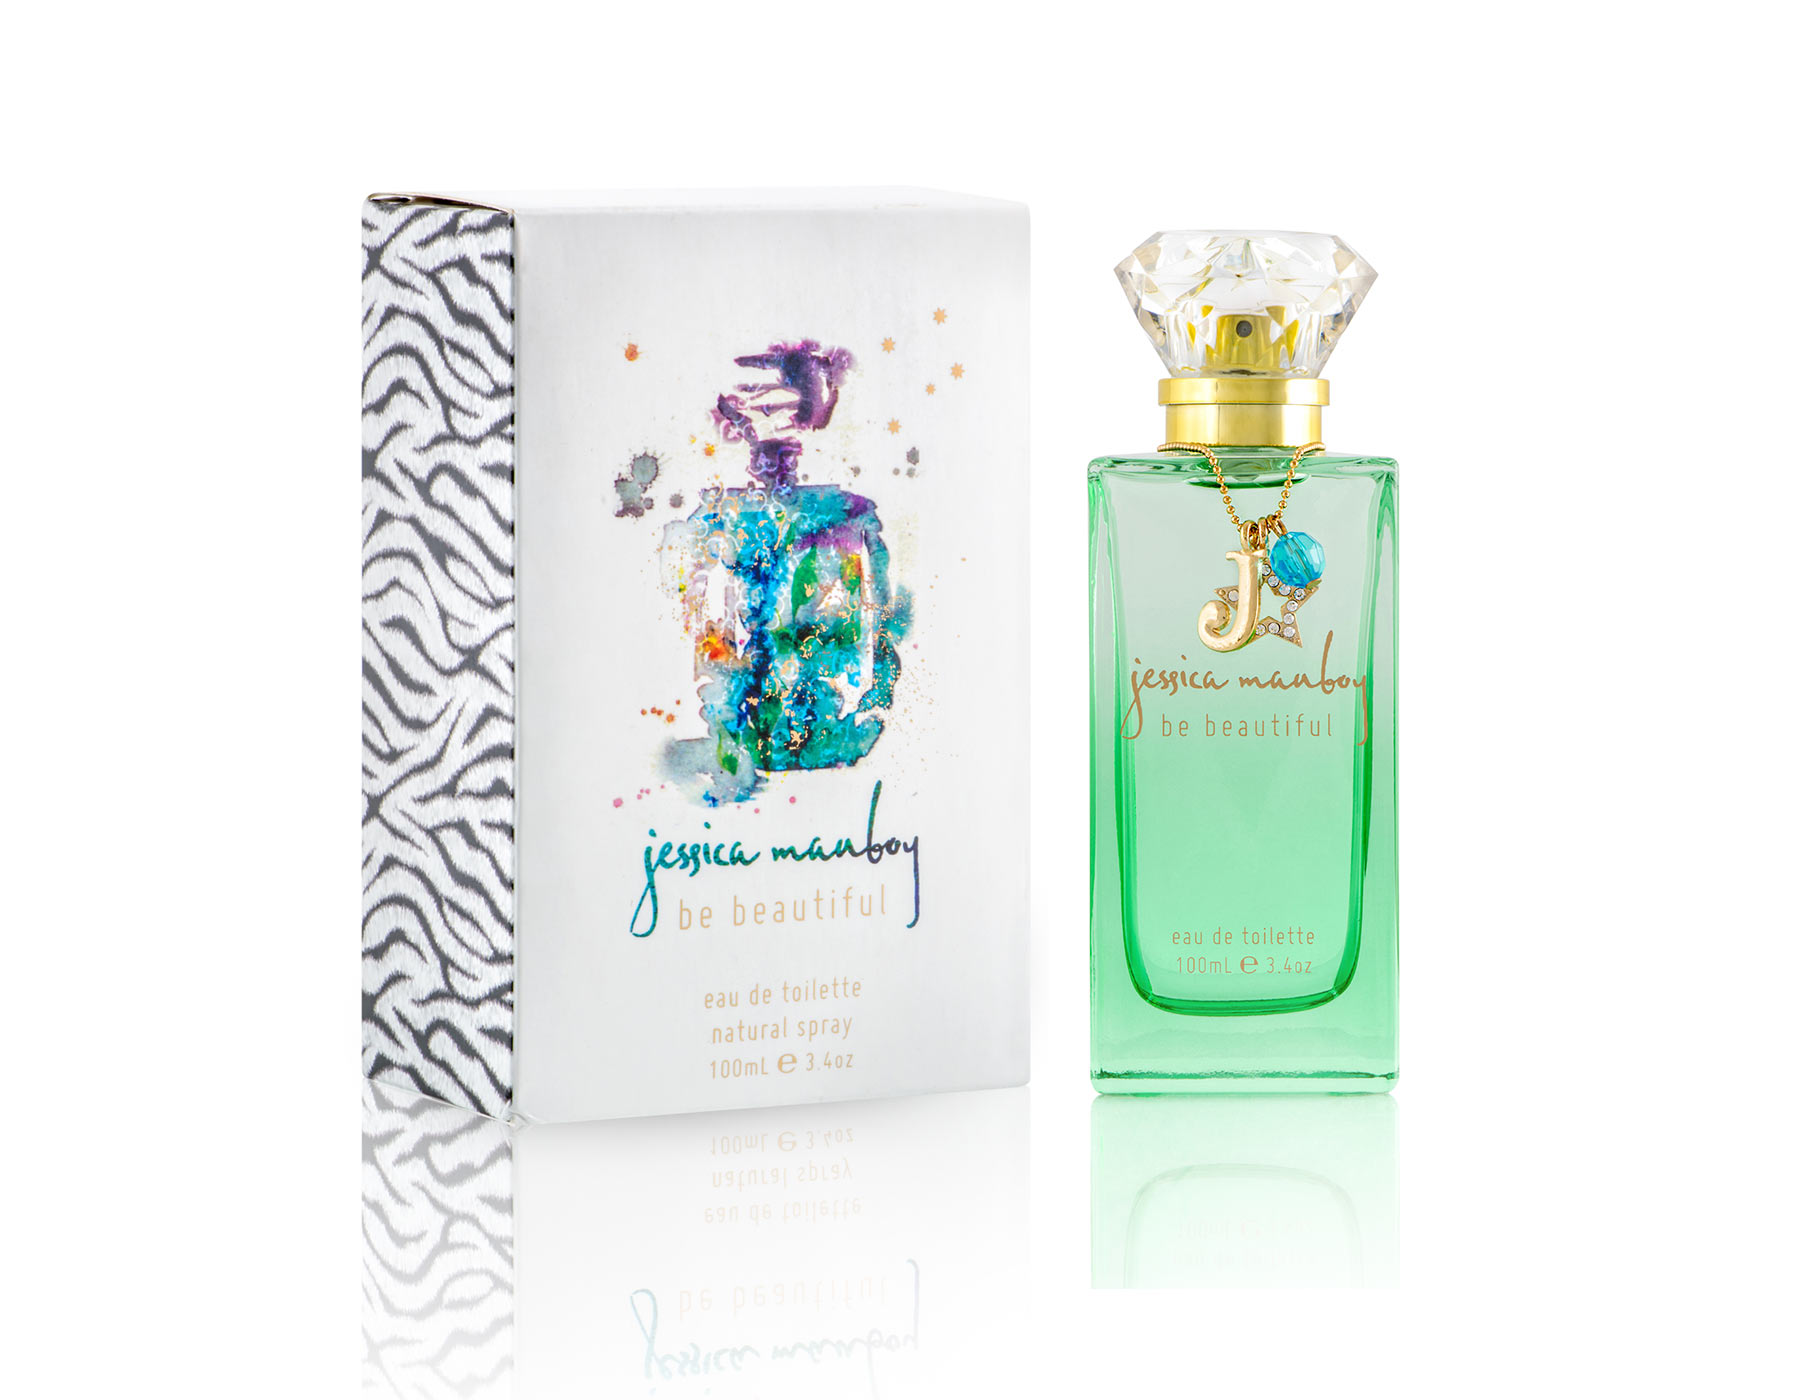 JESSICA MAUBOY 'BE BEAUTIFUL' FRAGRANCE